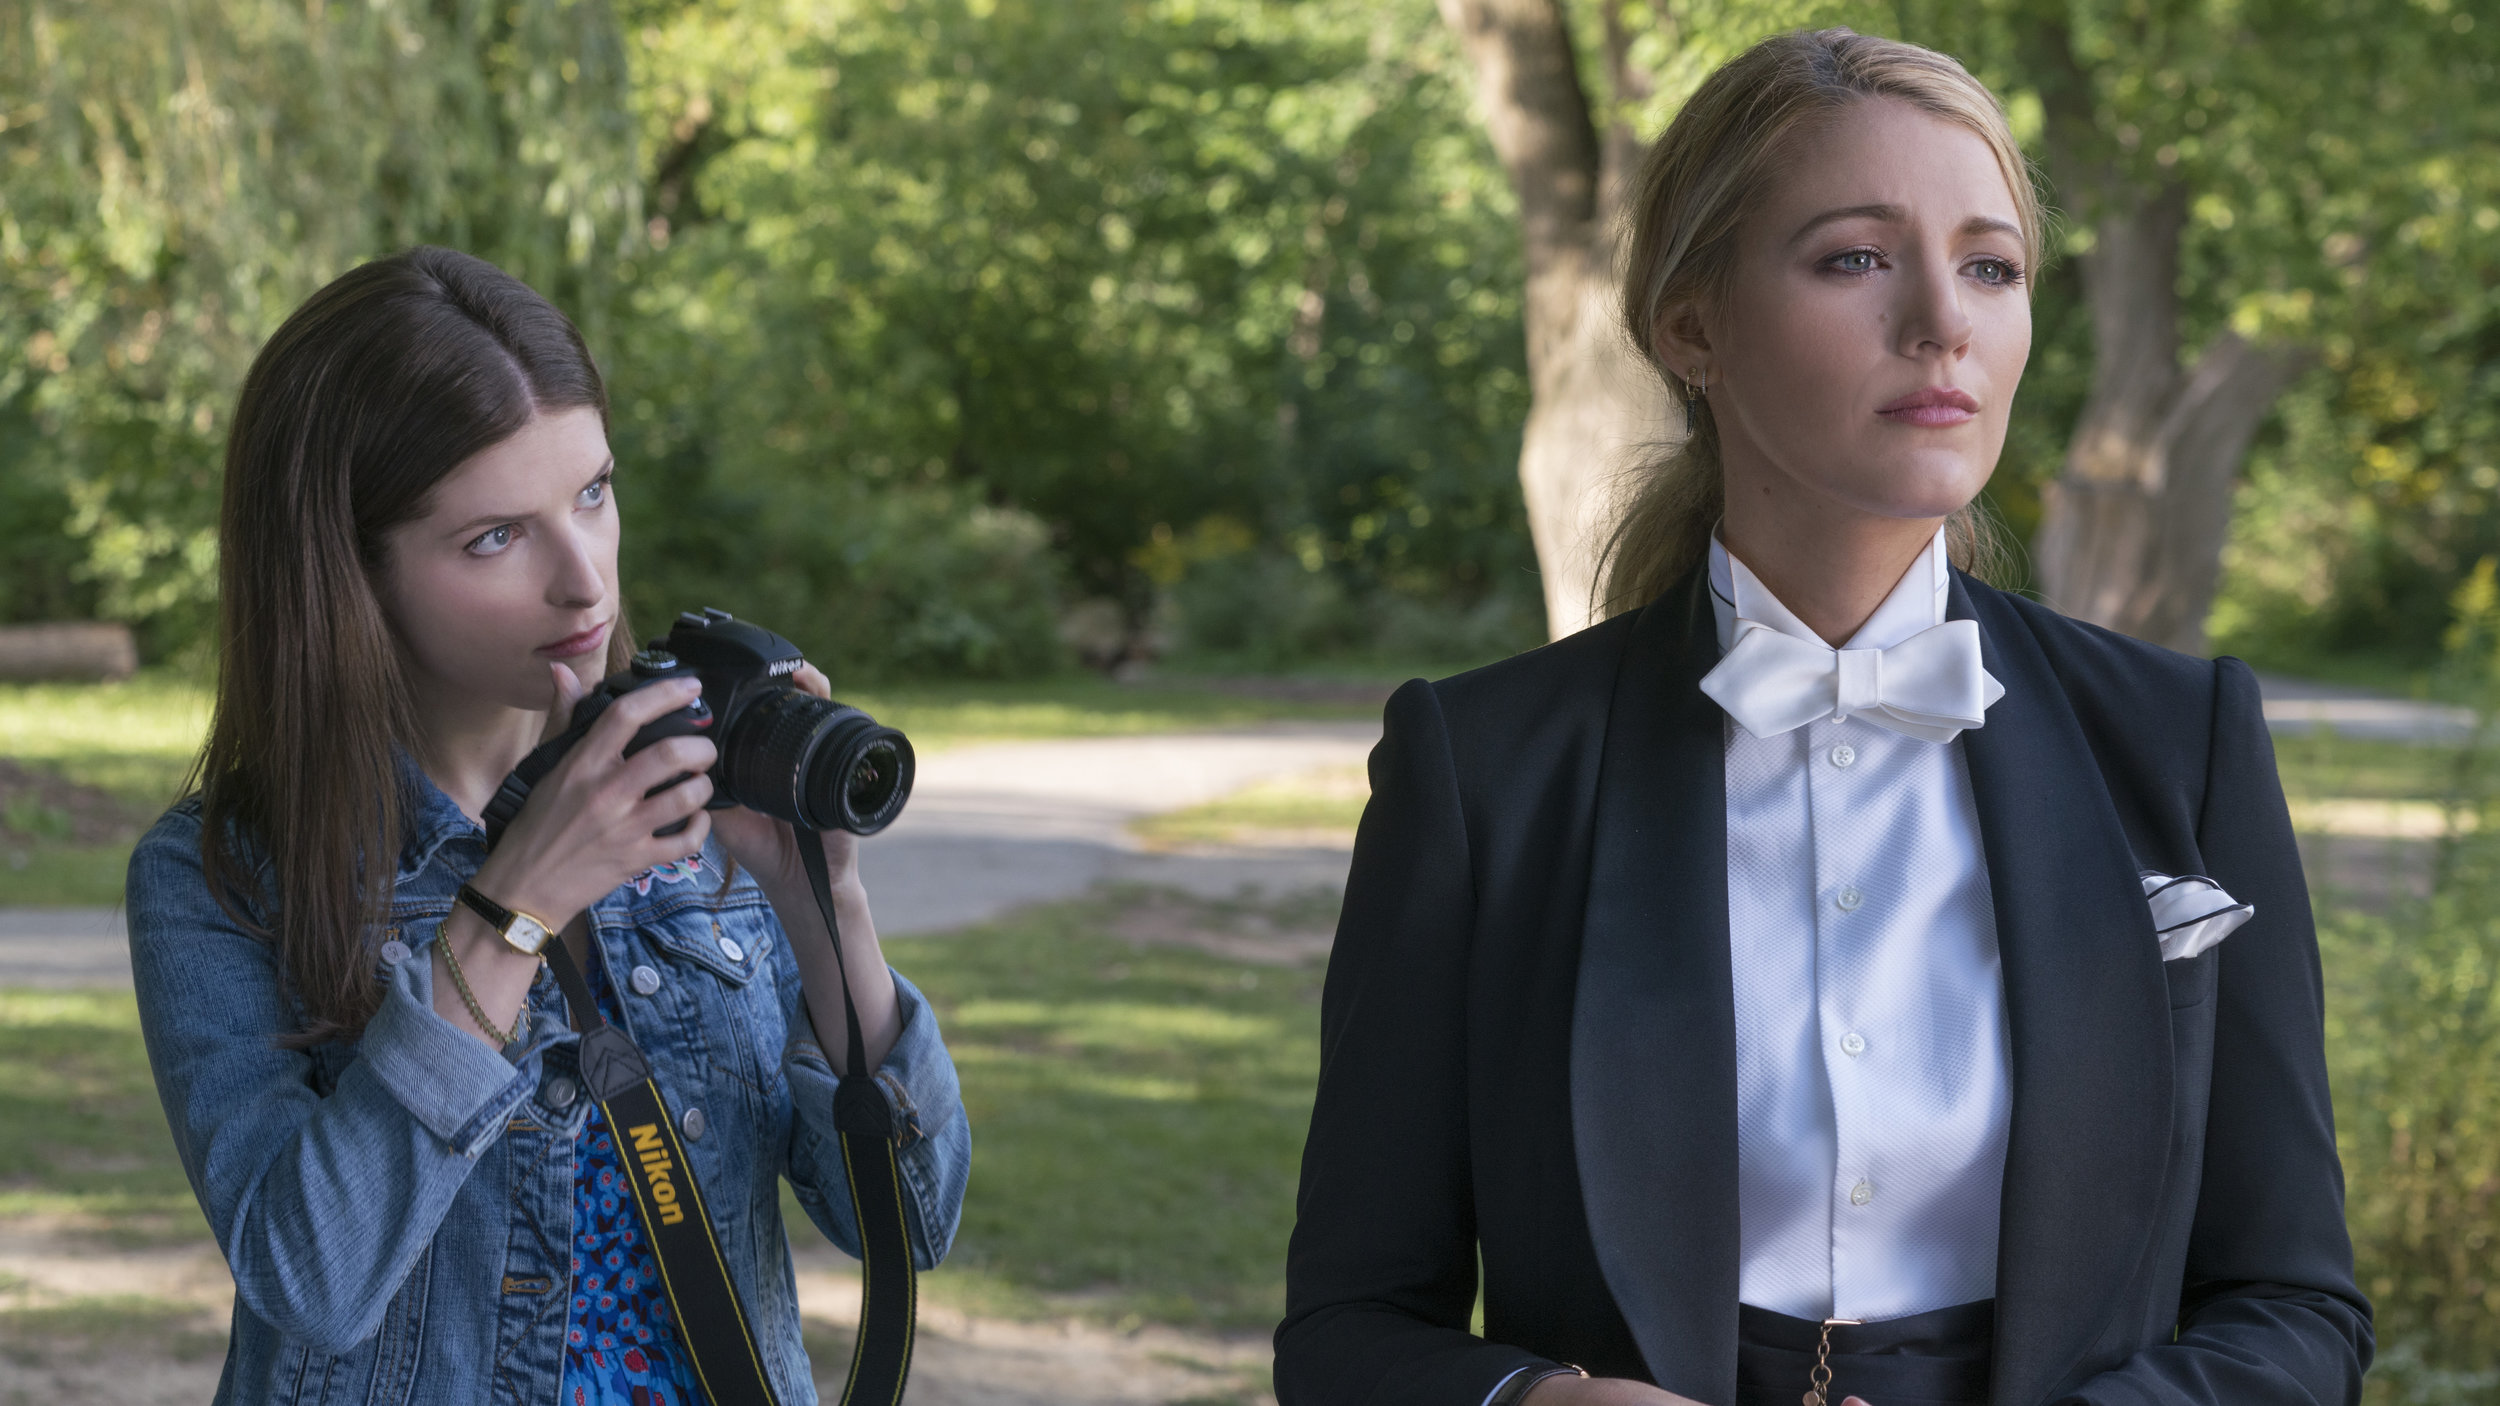 """Stephanie Smothers (Anna Kendrick, left) learns secrets about her new friend, Emily Nelson (Blake Lively), in the thriller """"A Simple Favor."""" (Photo by Peter Iovino, courtesy of Lionsgate)"""